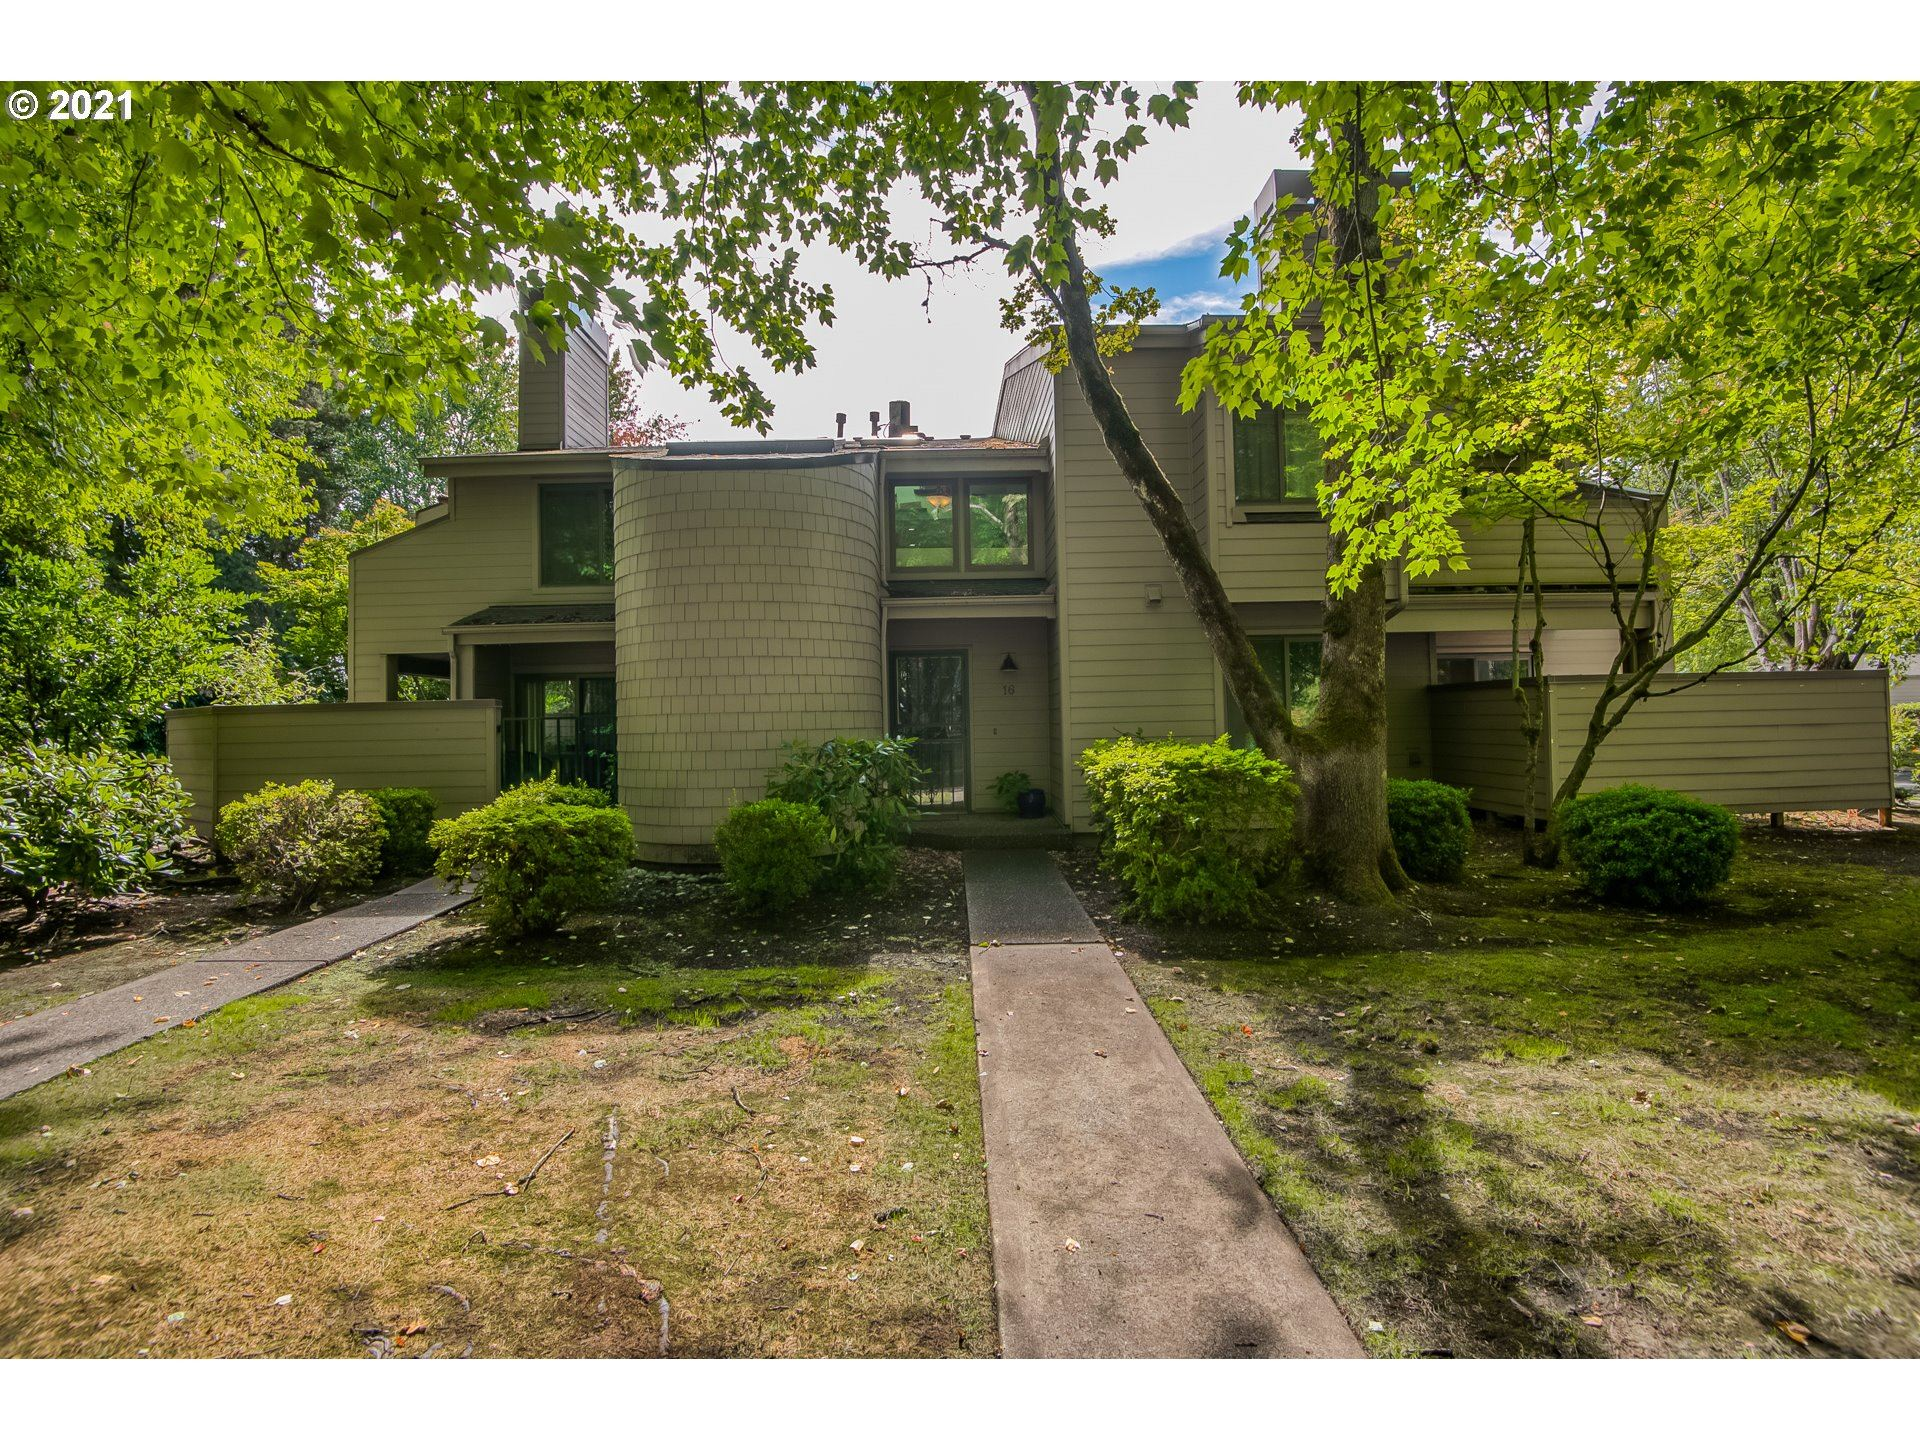 1755 NW 143RD AVE #16, Portland, OR 97229 - MLS#: 21606105